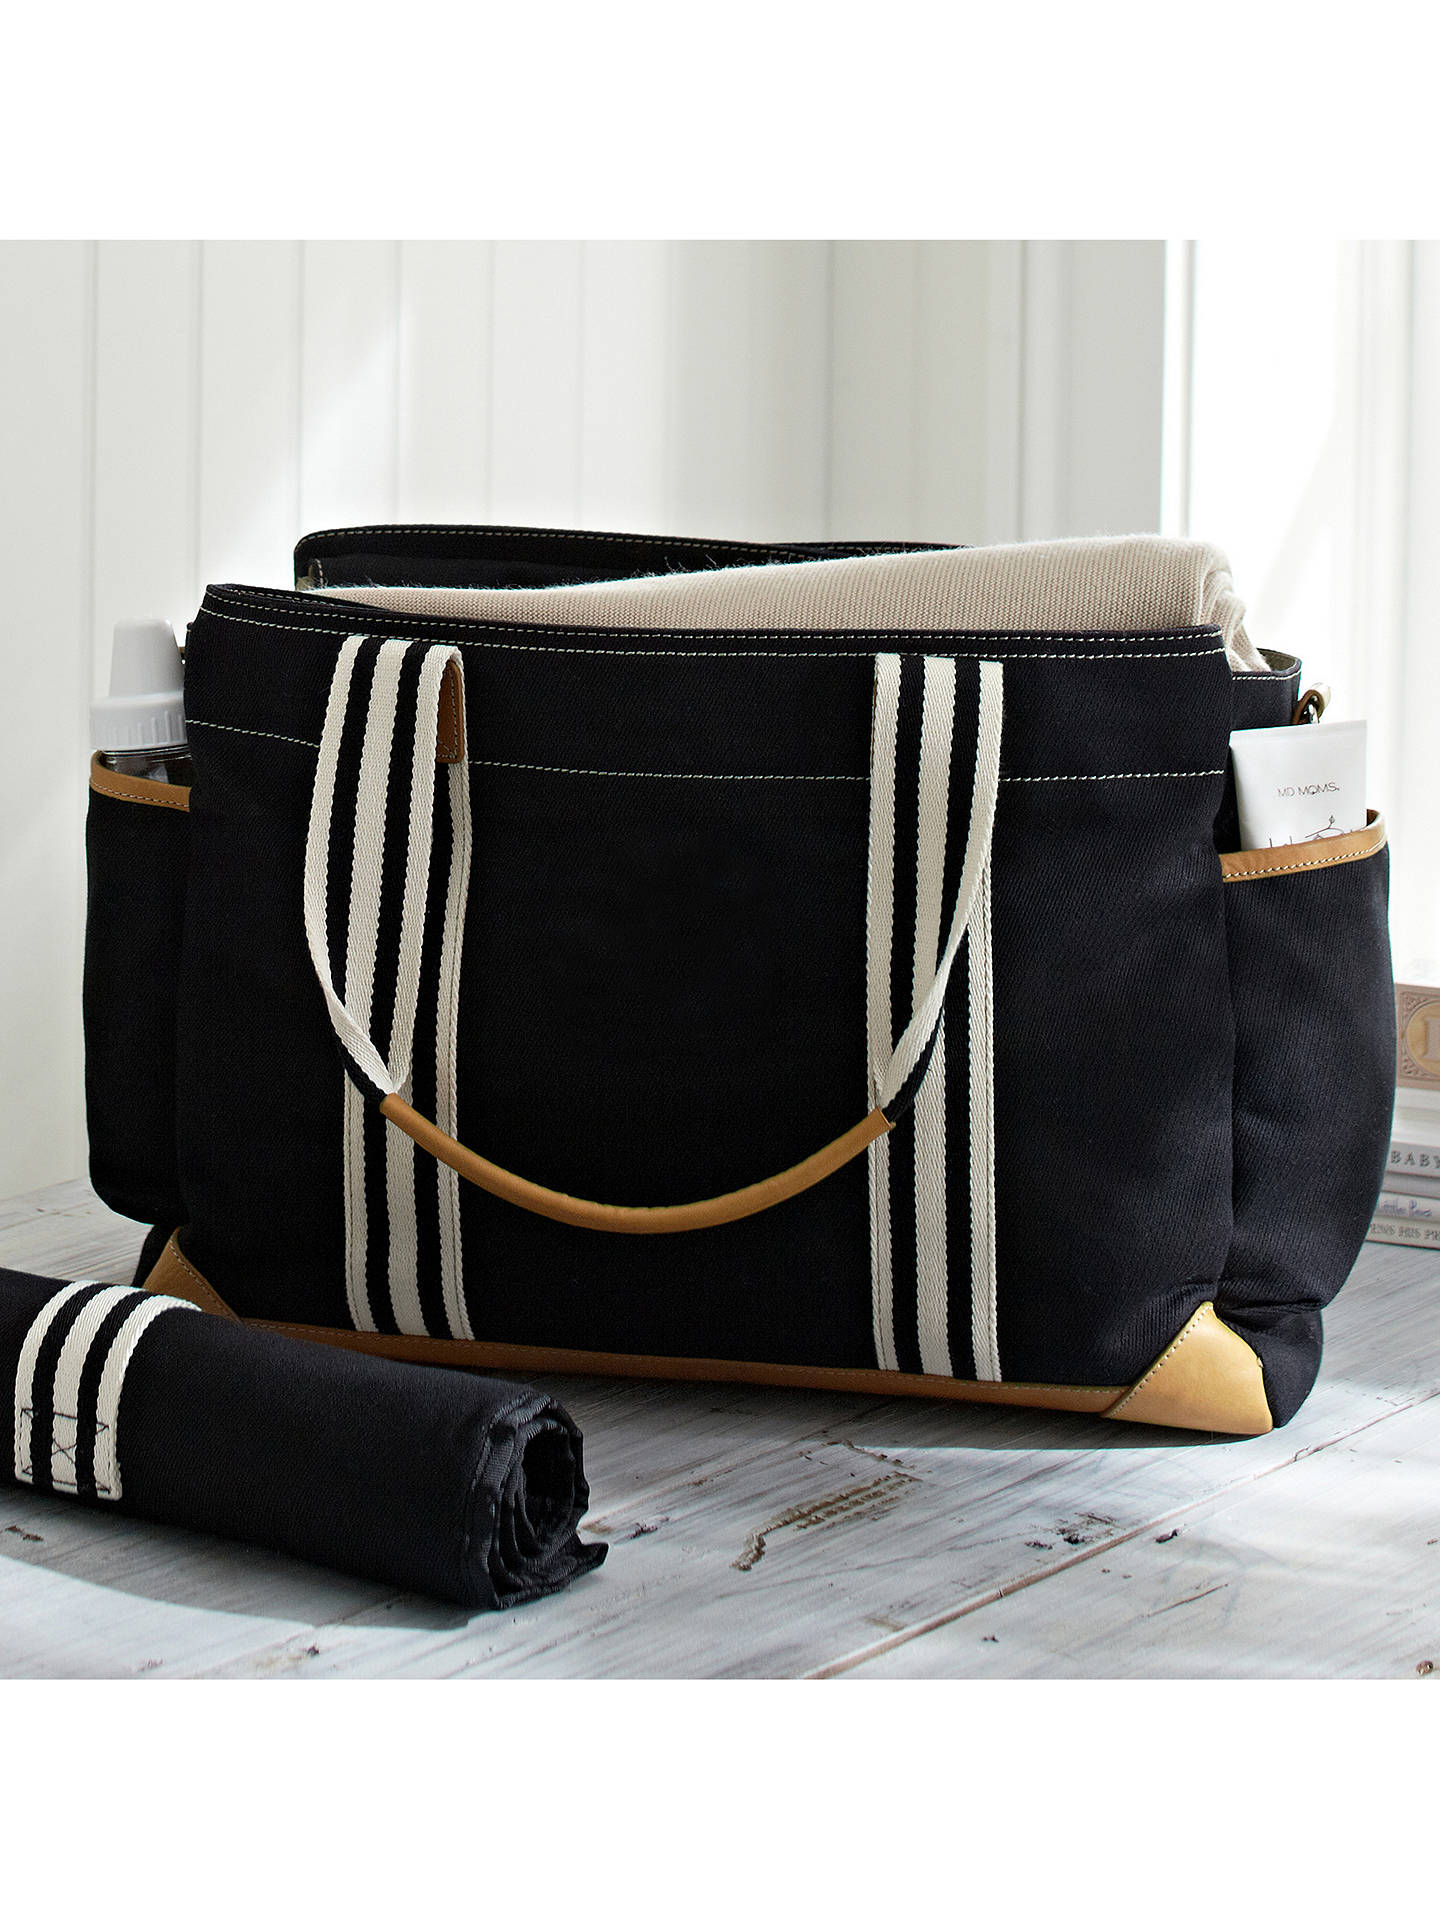 Buy Pottery Barn Kids Classic Changing Bag, Black Online at johnlewis.com